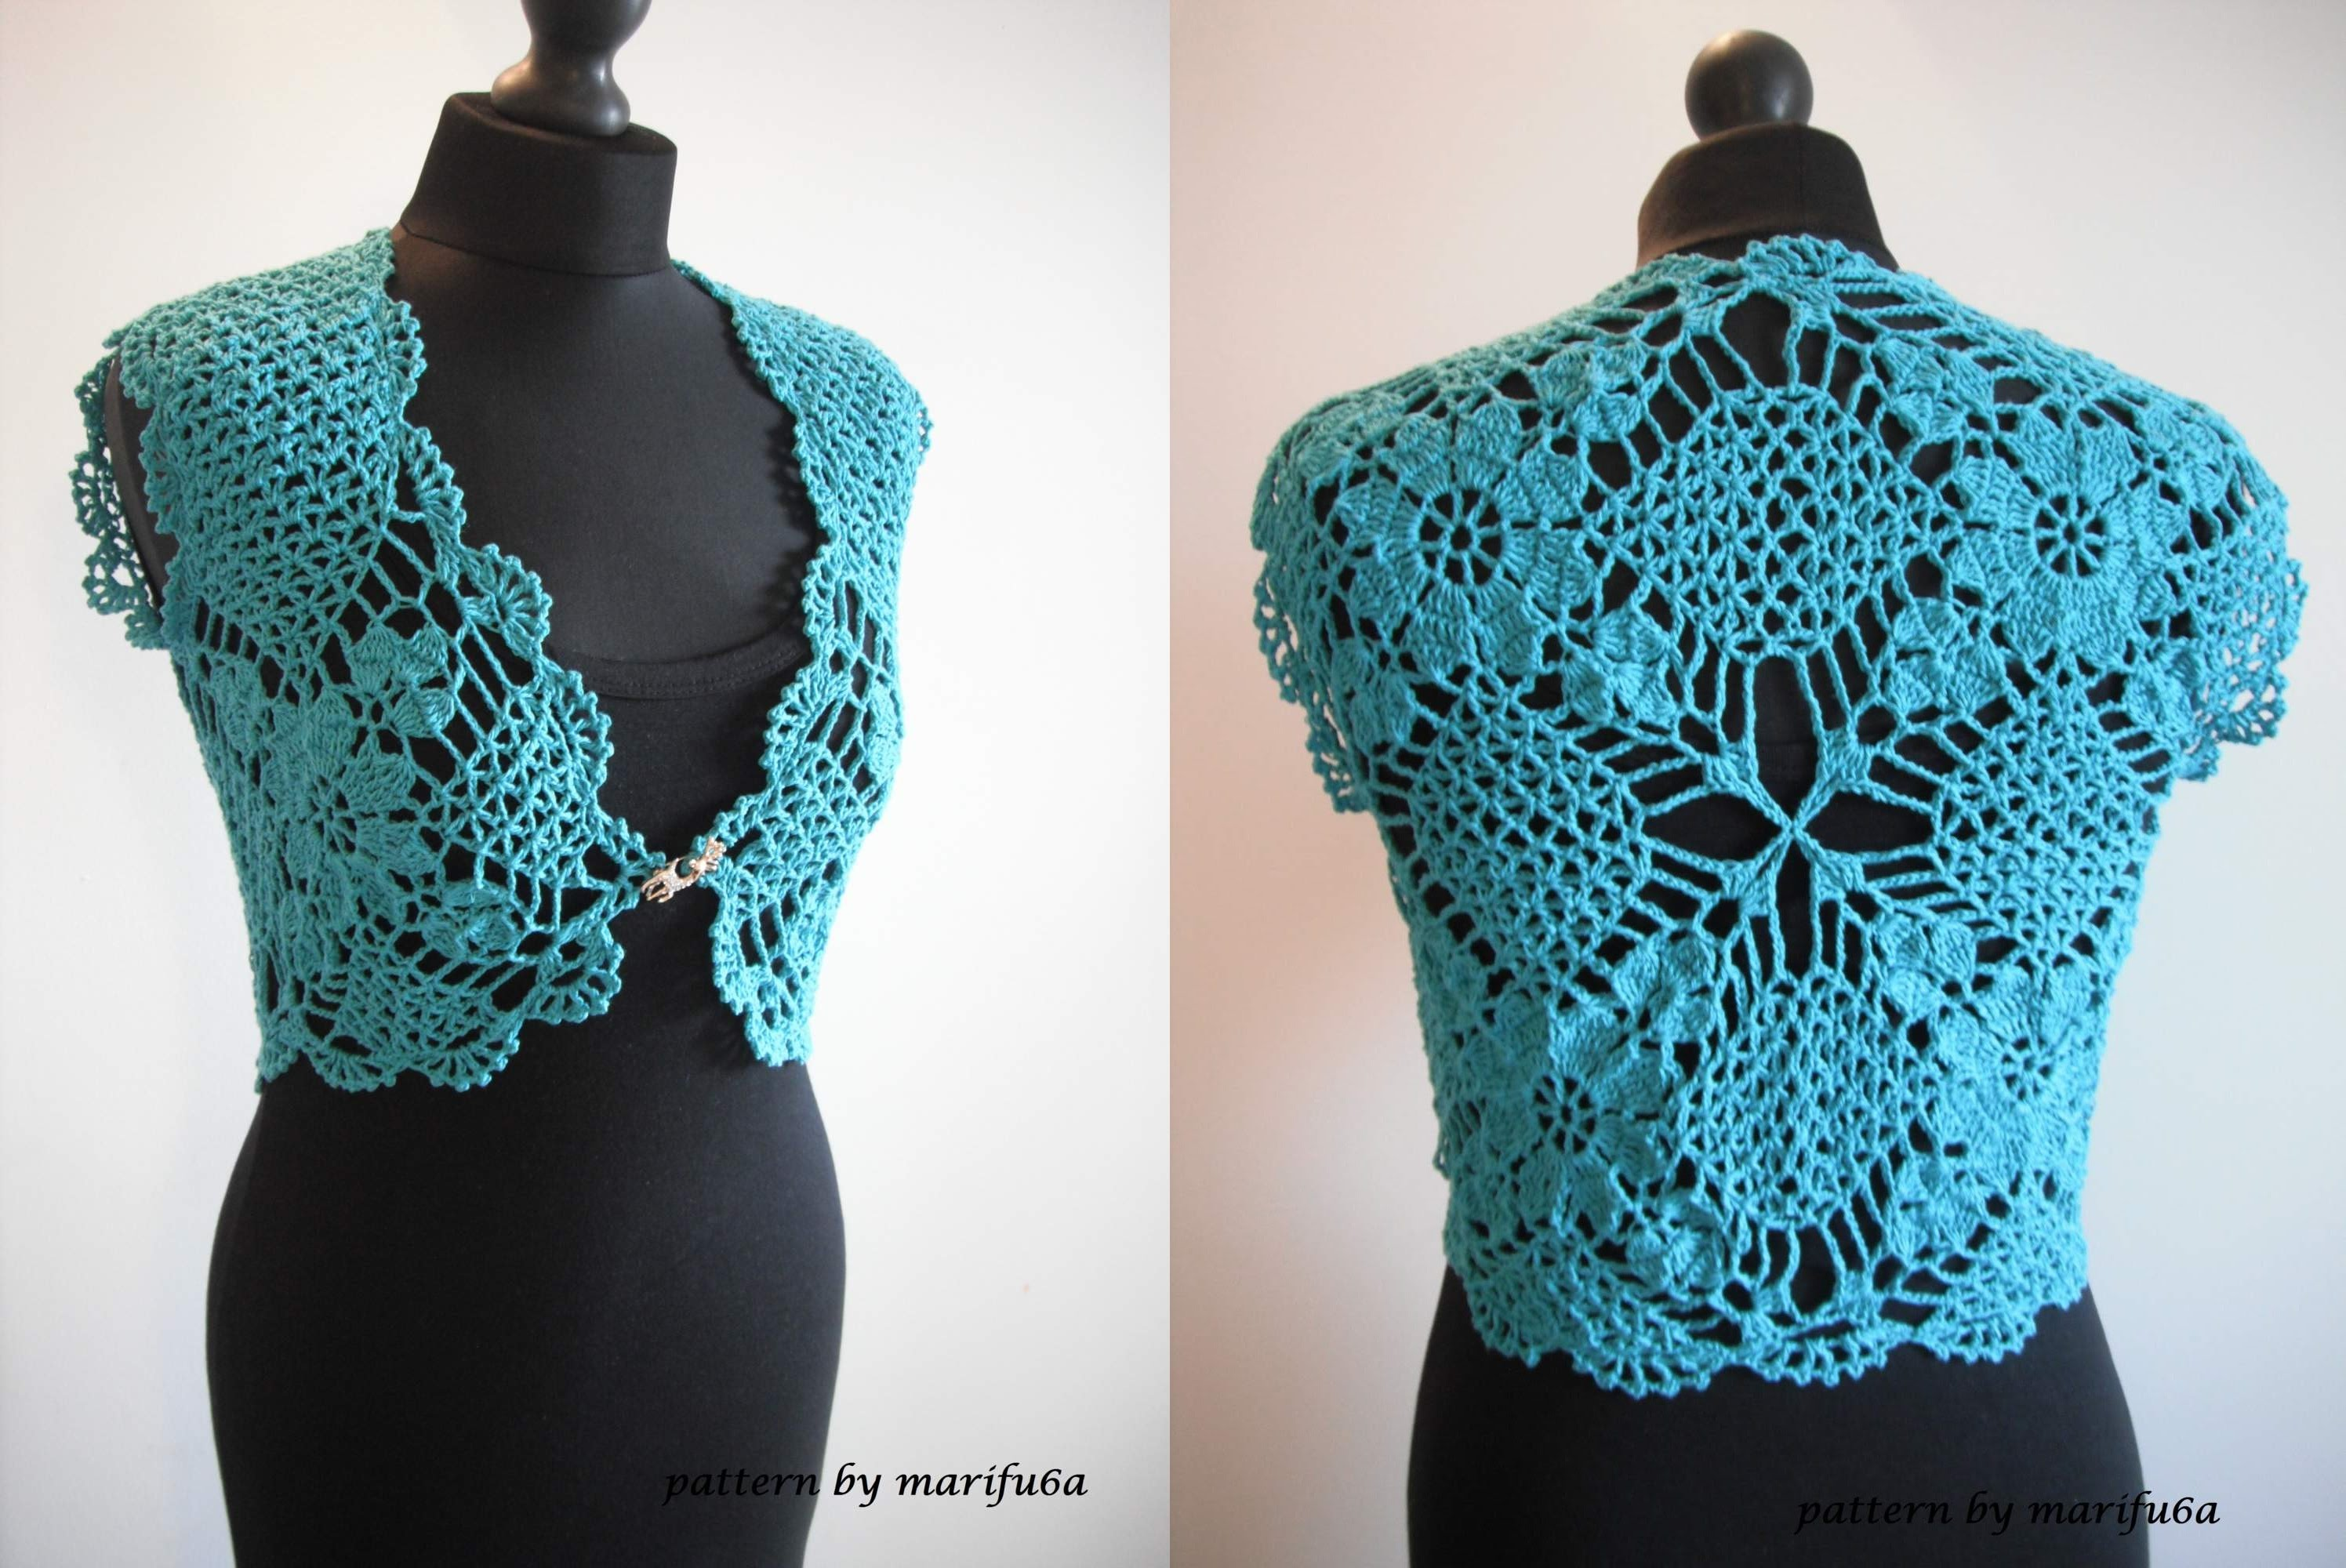 crochet bolero how to crochet mint bolero shrug chaleco free pattern tutorial by marifu6a kfwauef